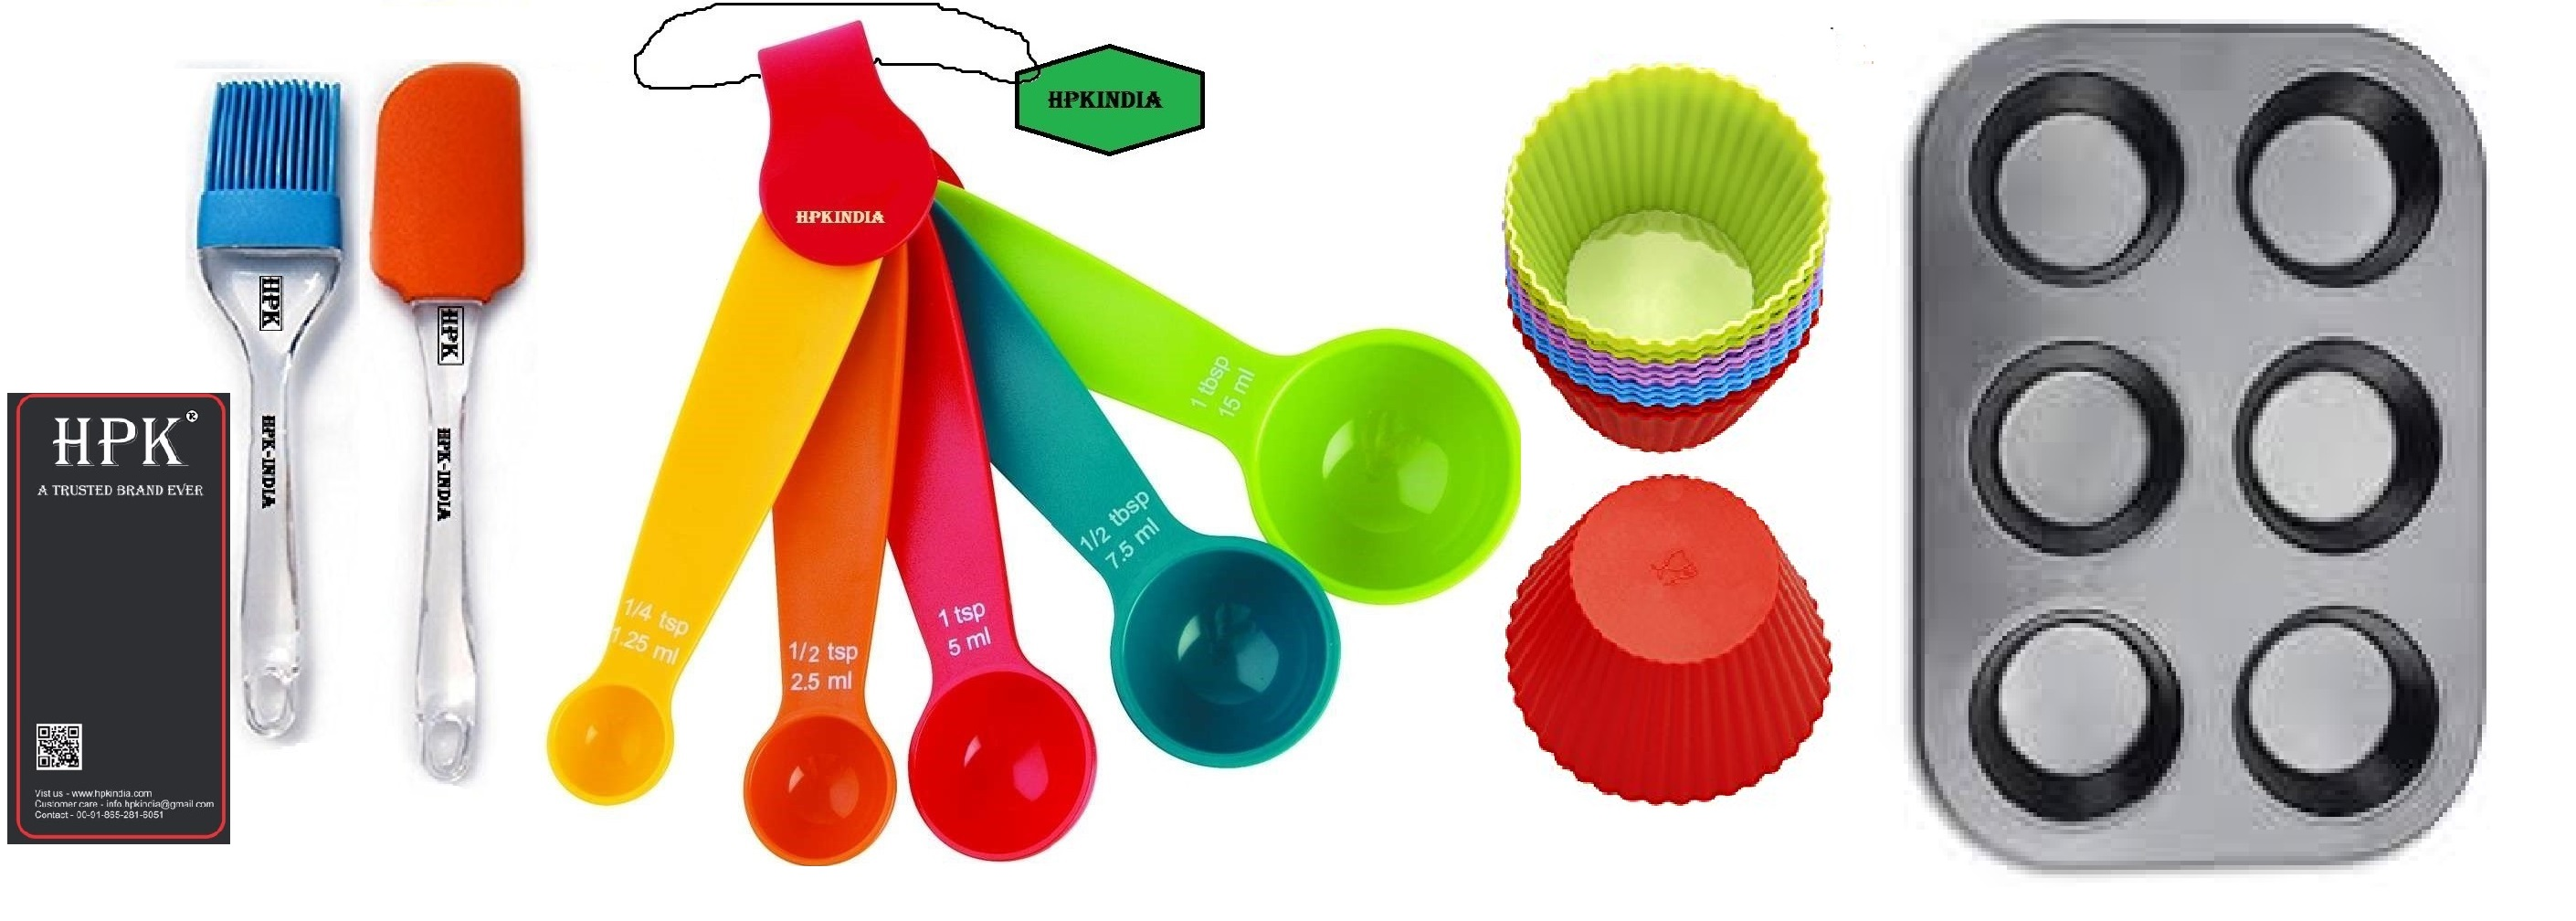 hpk-brsuh spatula round molds muffin tray measuring spoons  round  molds Set